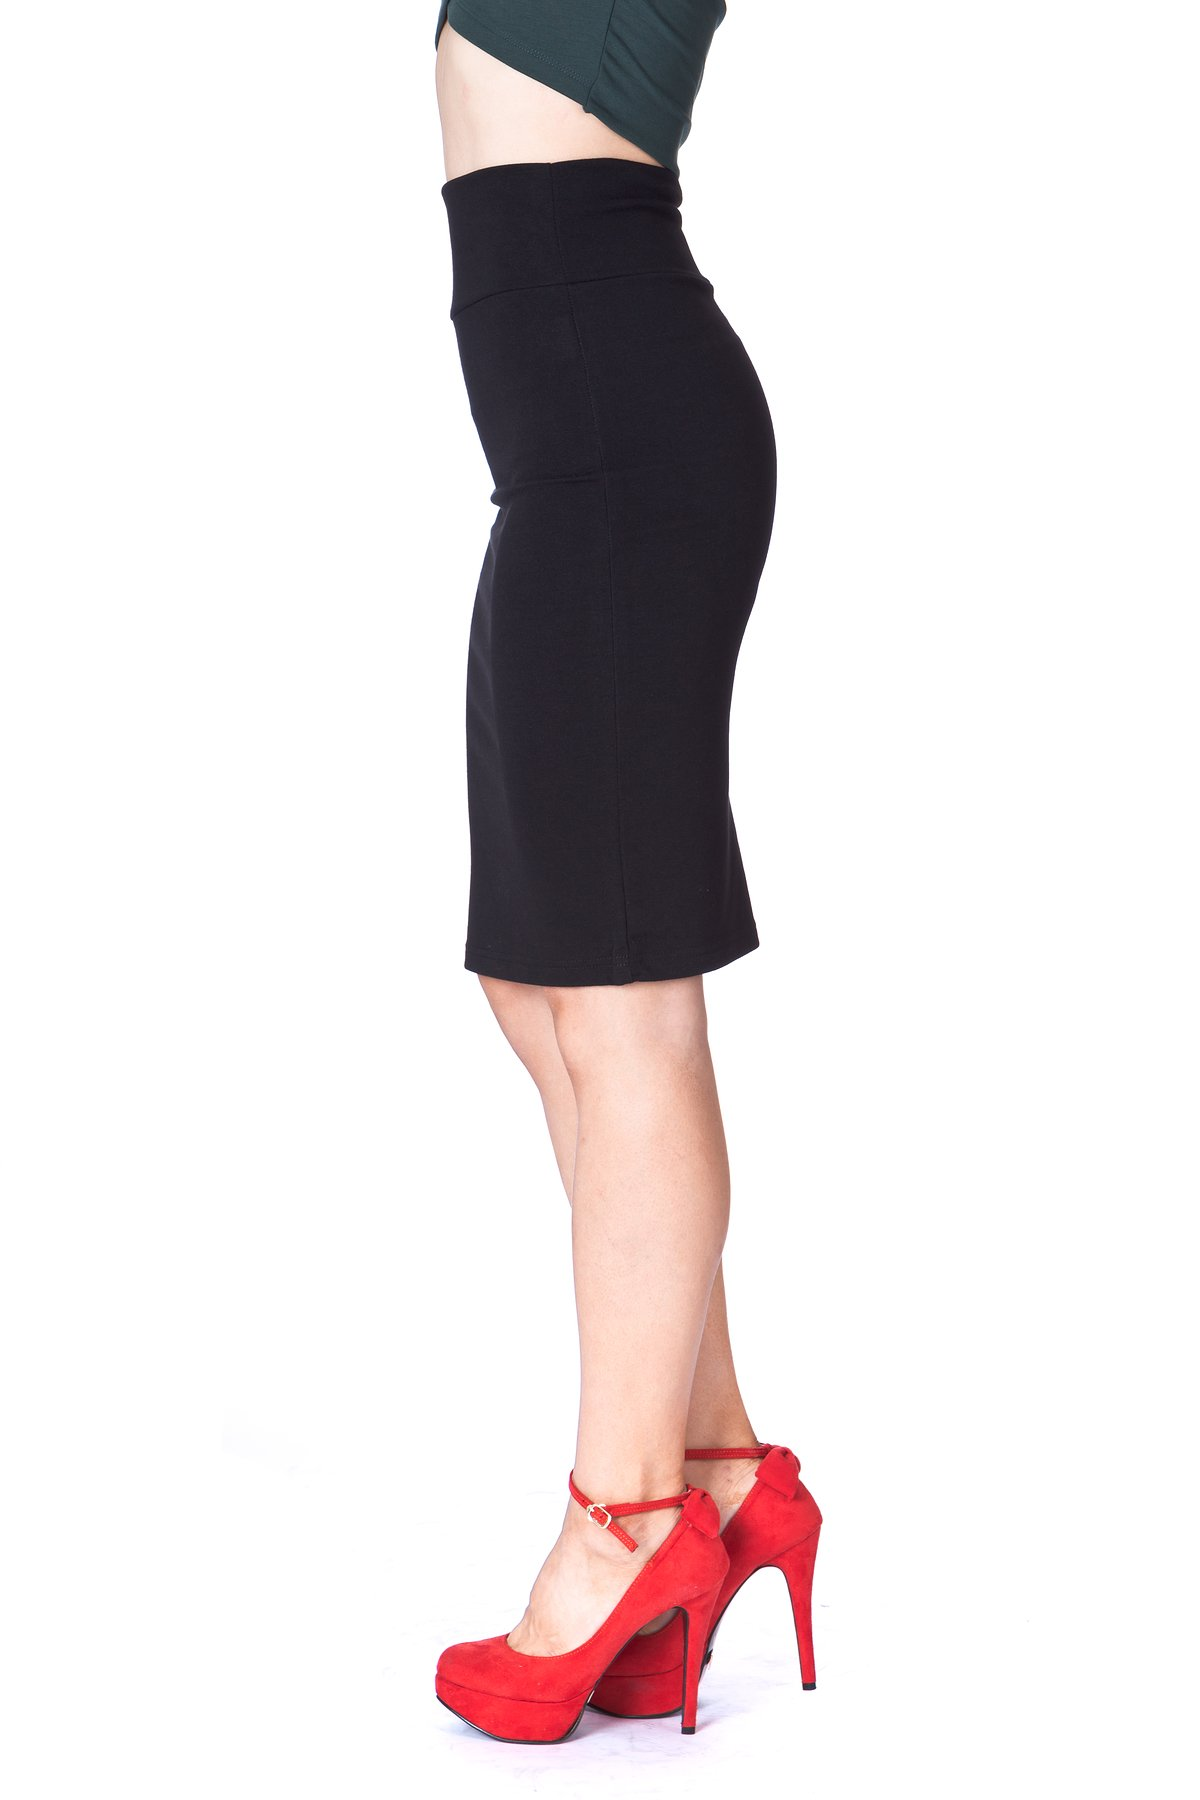 Every Occasion Stretch Pull on Wide High Waist Bodycon Pencil Knee Length Midi Skirt Black 6